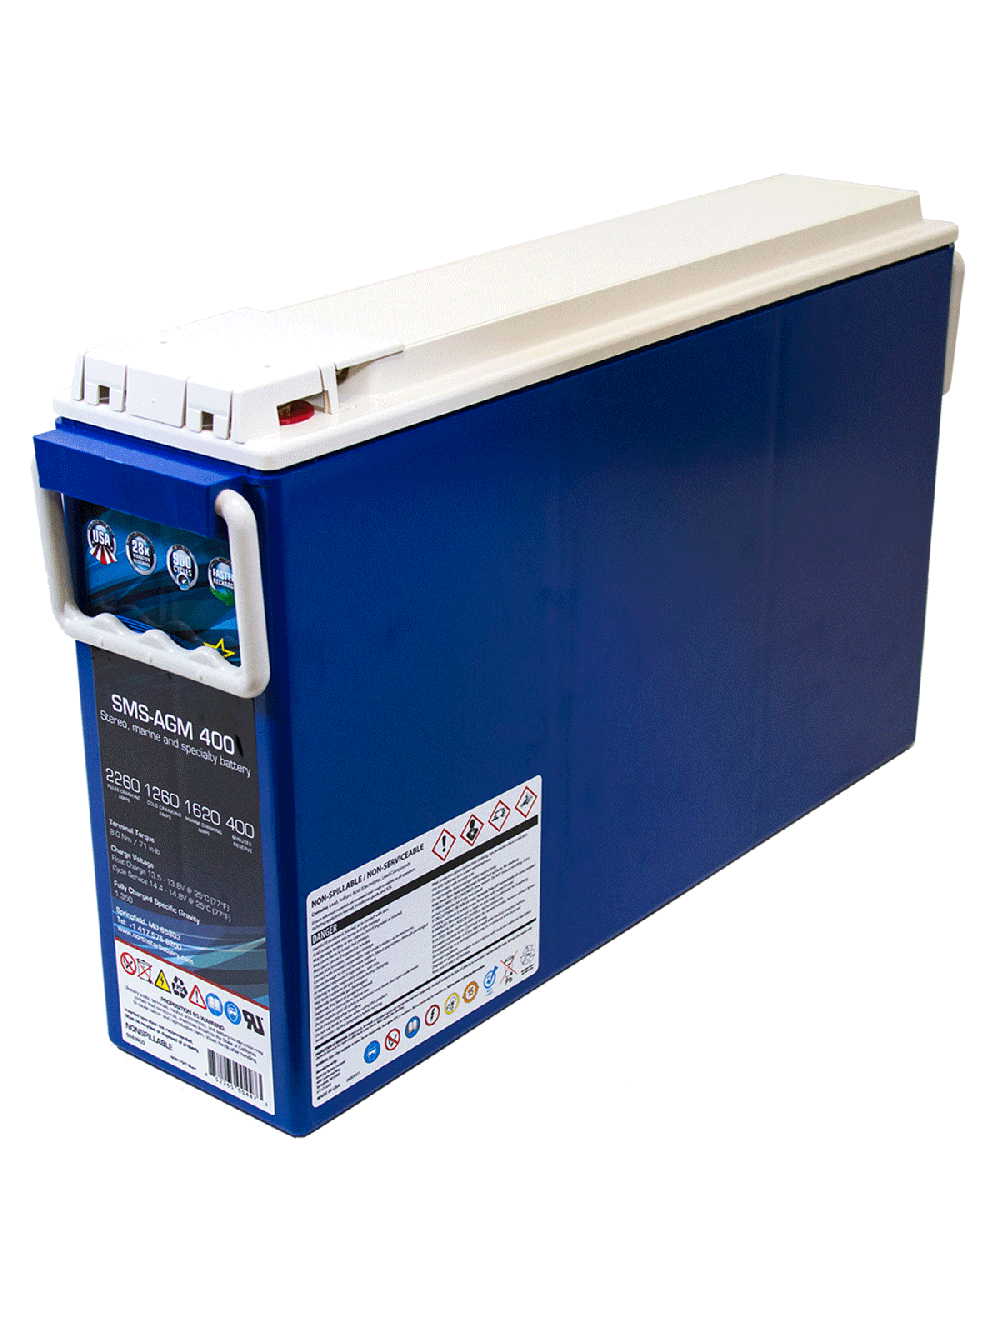 Northstar SMS-AGM 400 182 Amp Hour Battery